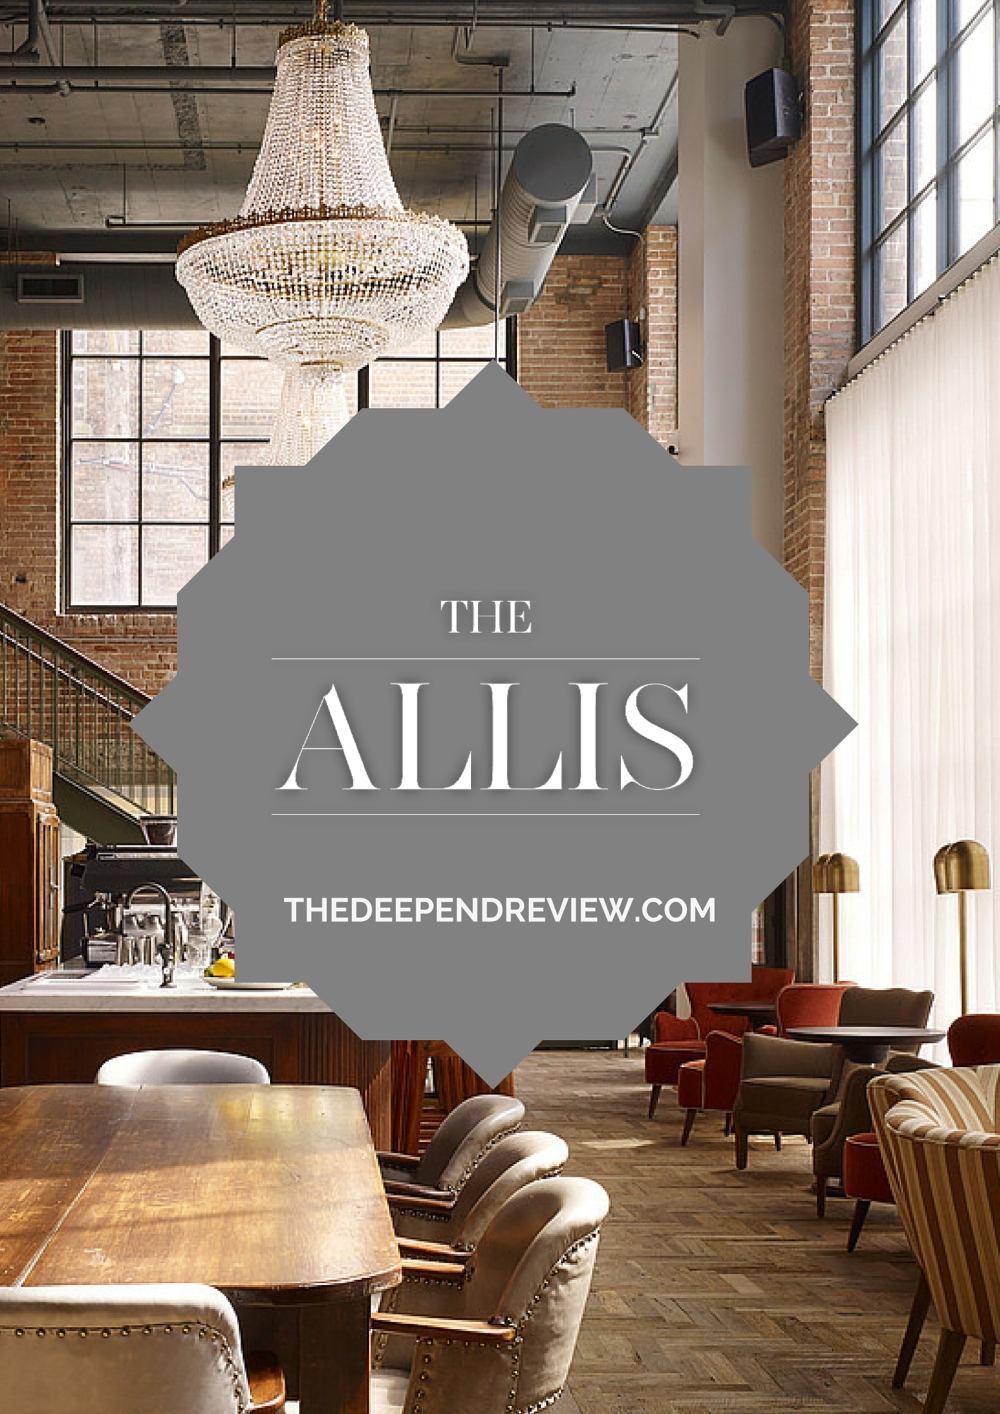 Poster for Allis